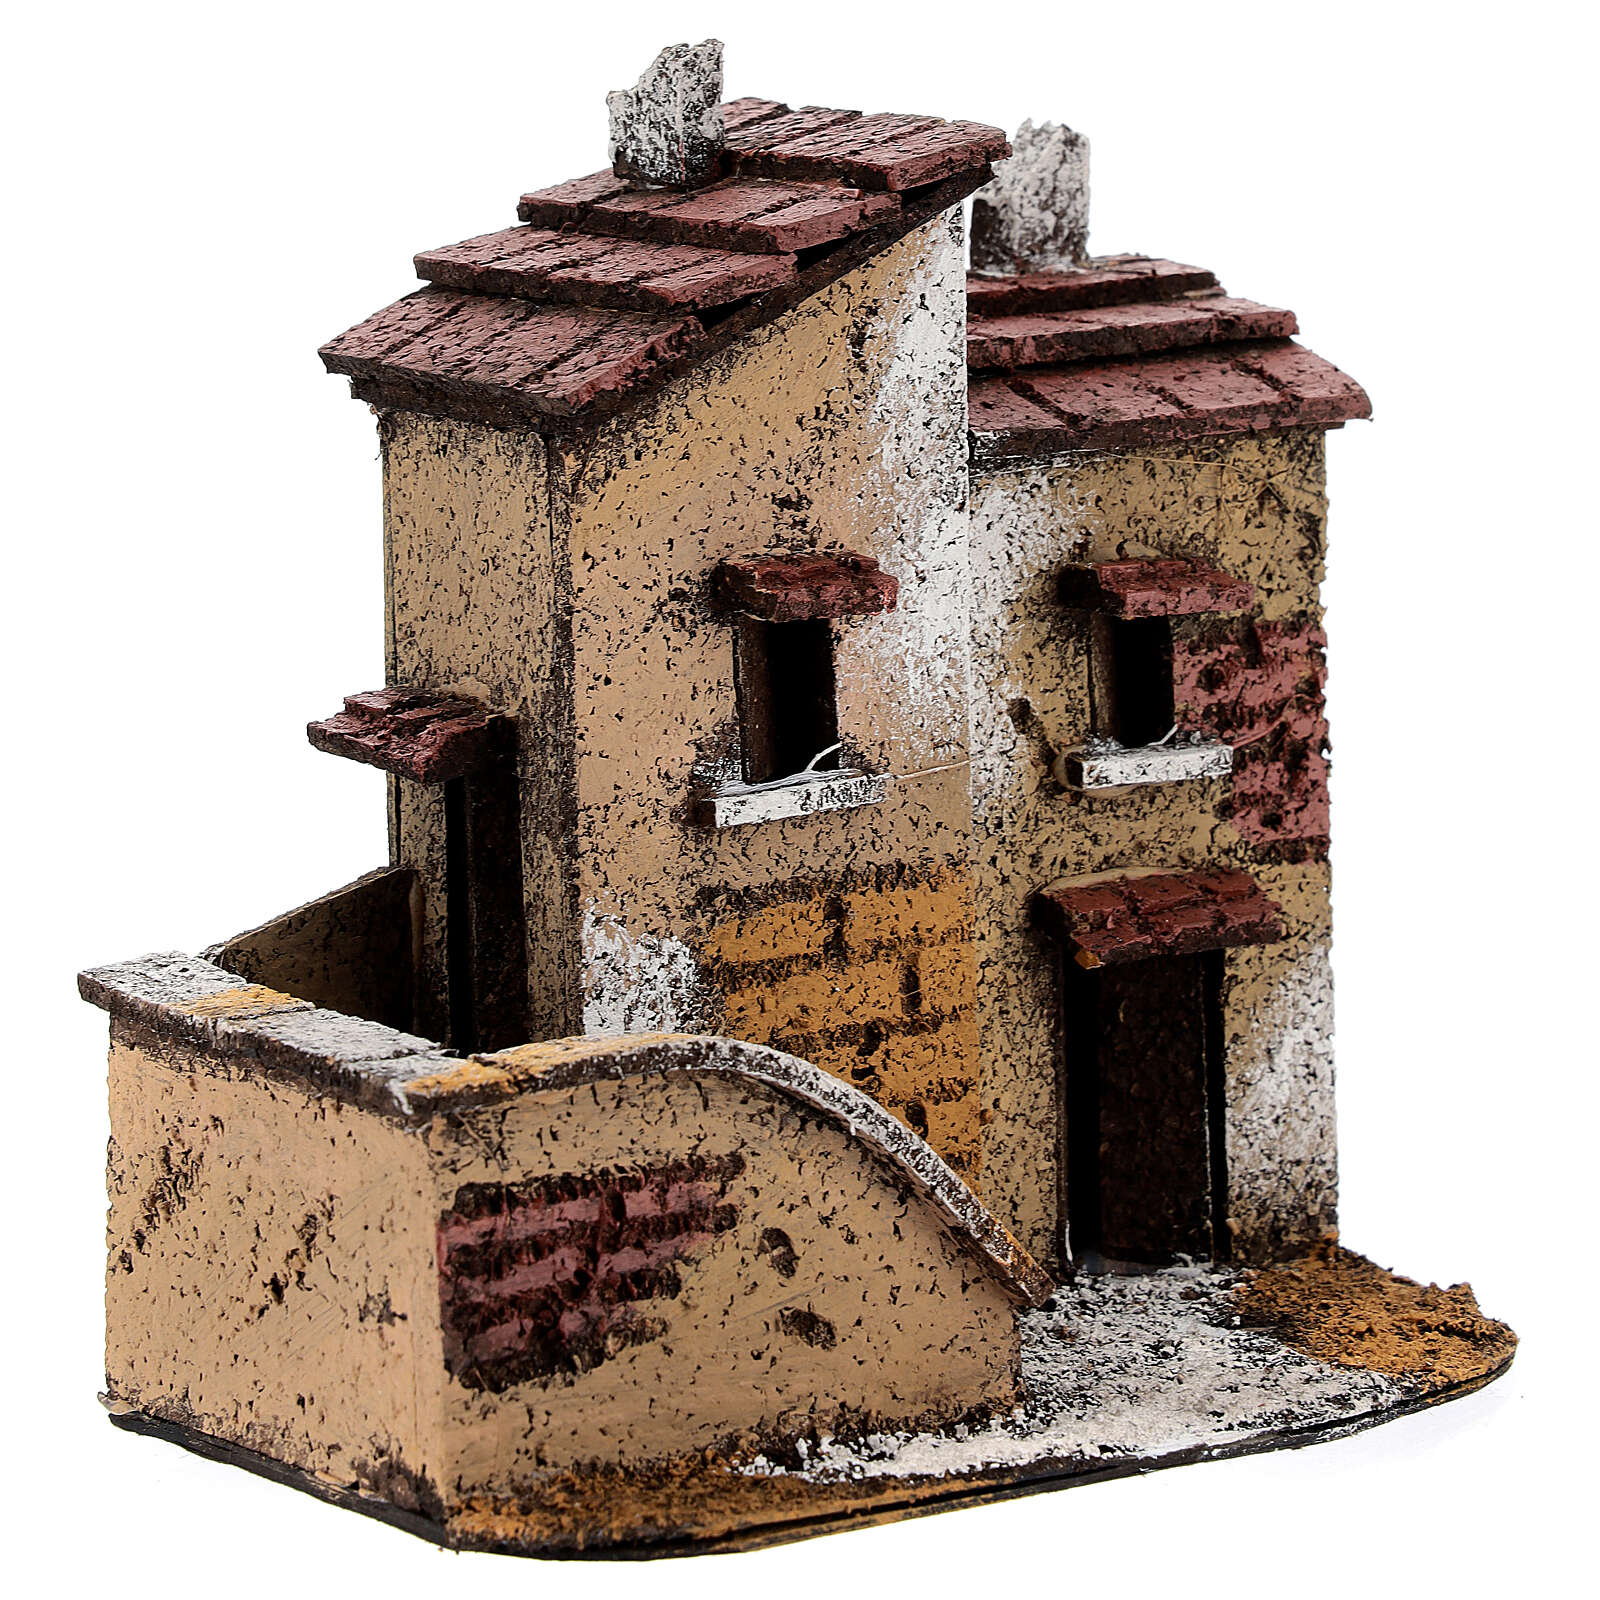 Couple of miniature houses cork 15x15x10 cm Nativity Scene with 3 cm figurines 4